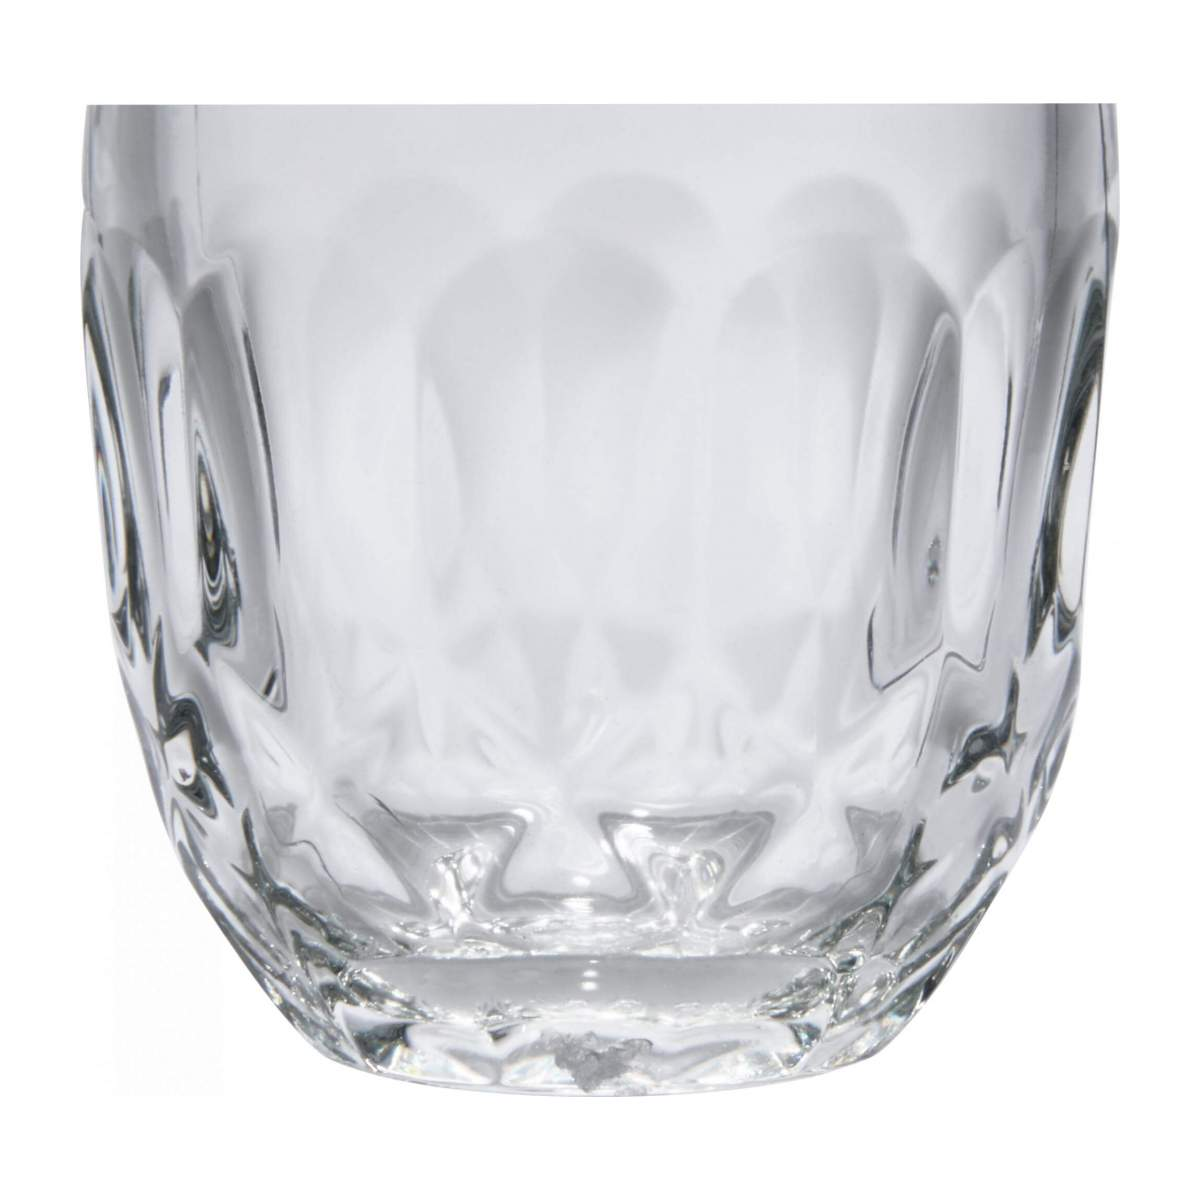 Expresso cup made of glass with facets n°2